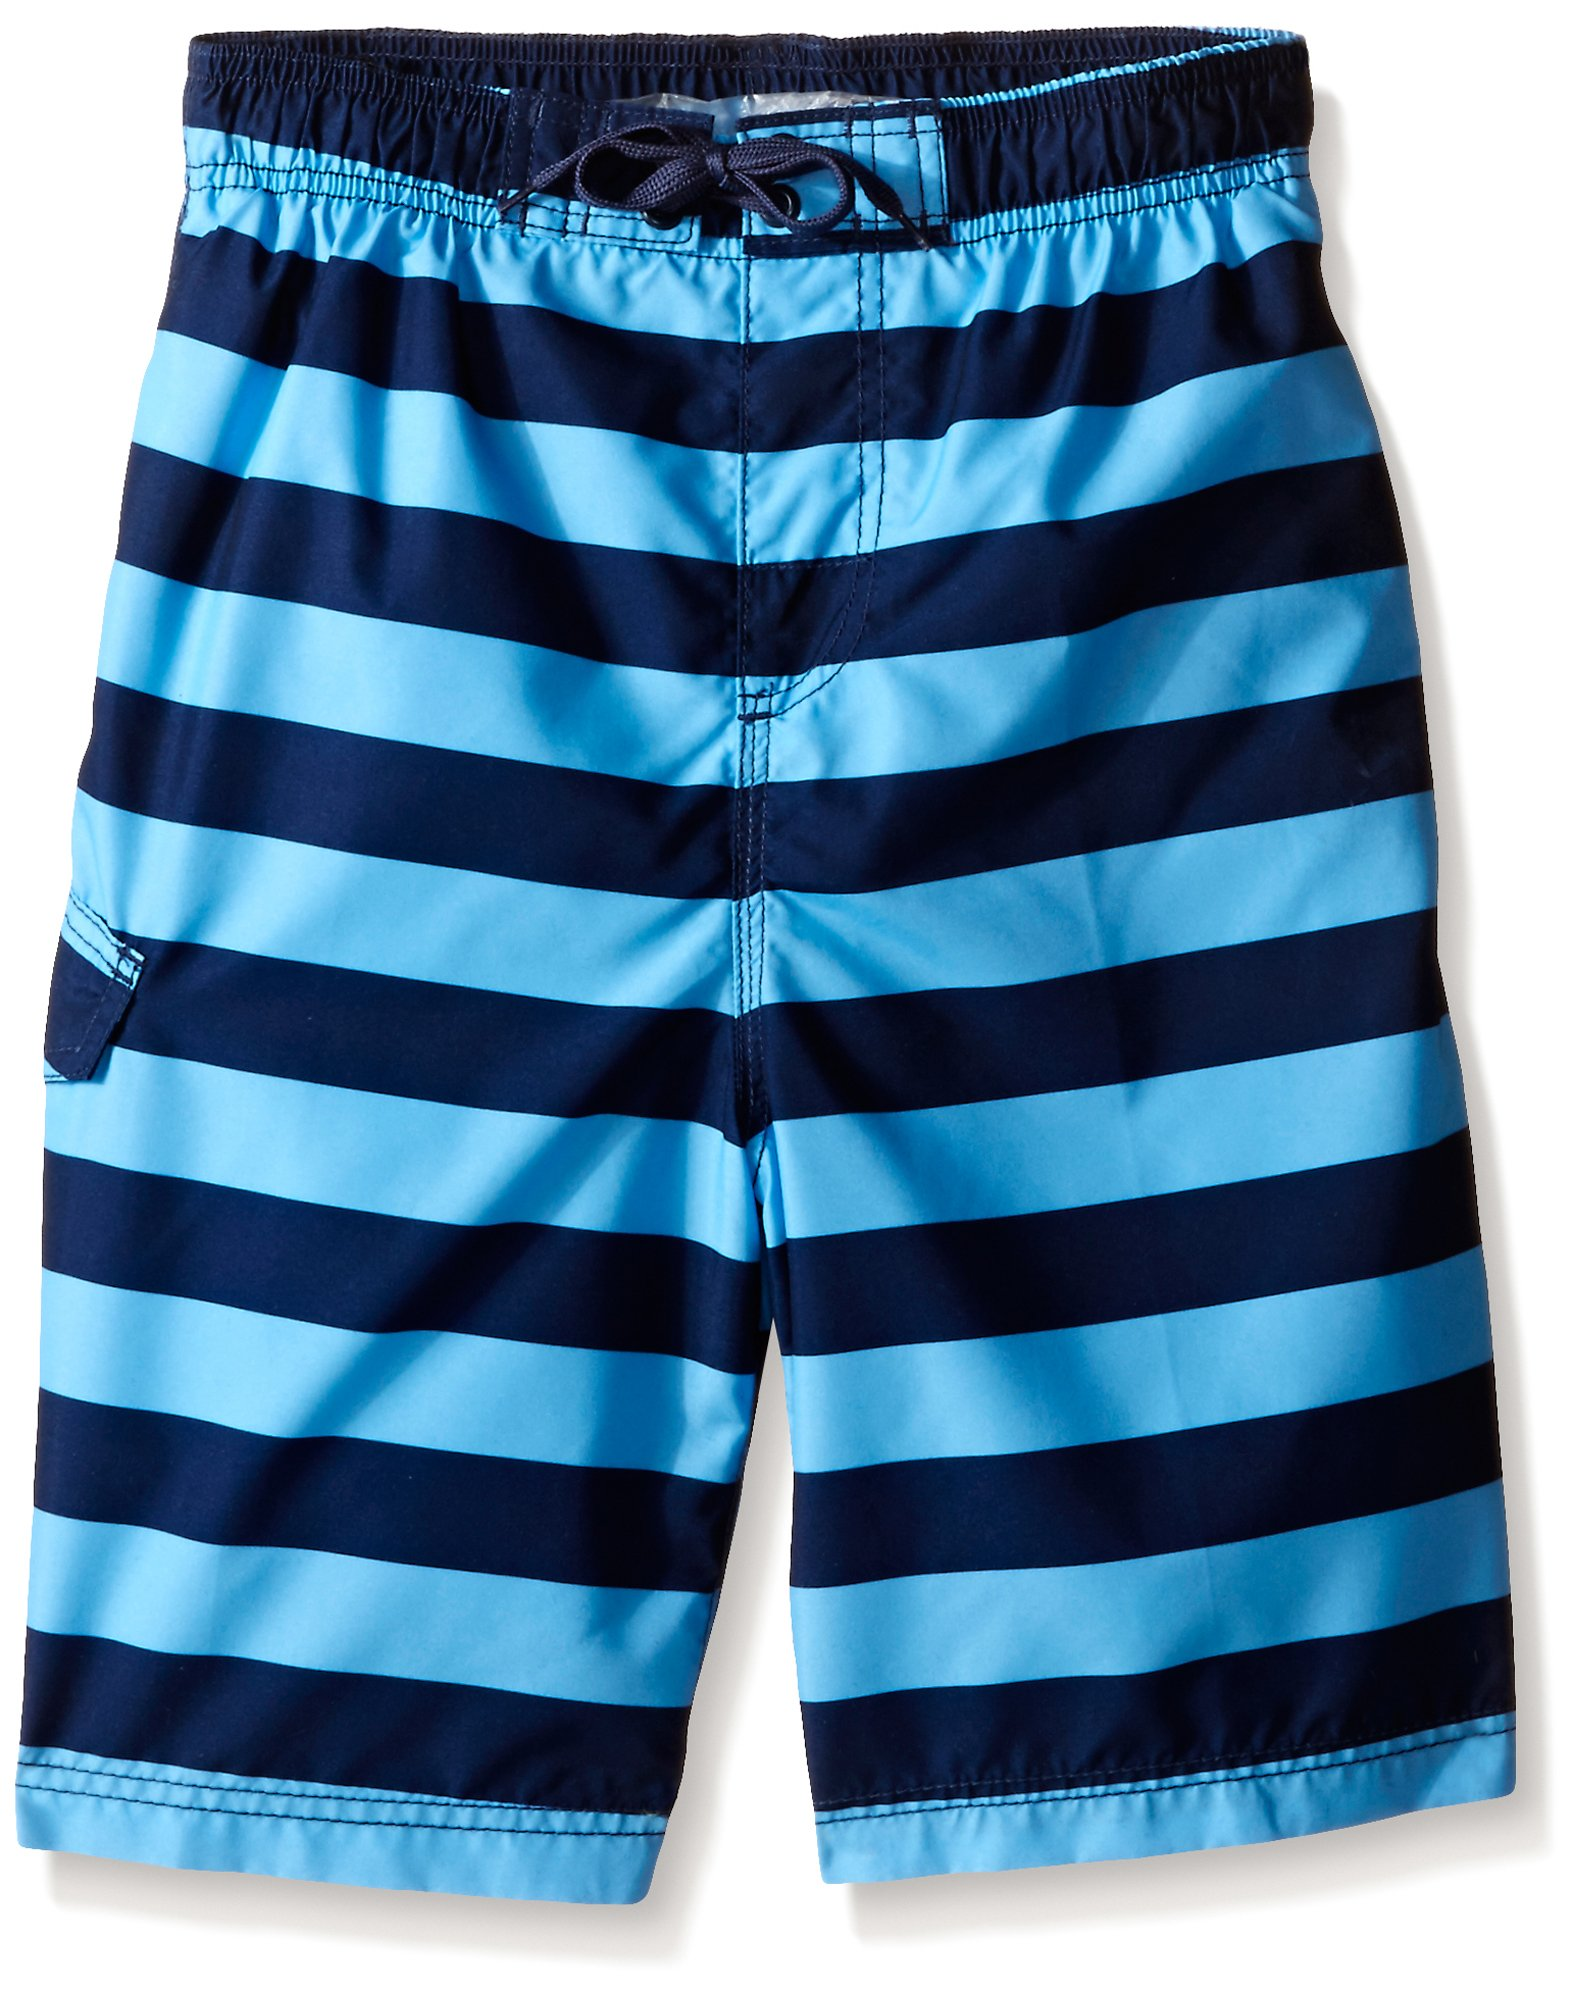 Kanu Surf Little Boys' Toddler Troy Stripe Swim Trunk, Navy/Blue, 3T